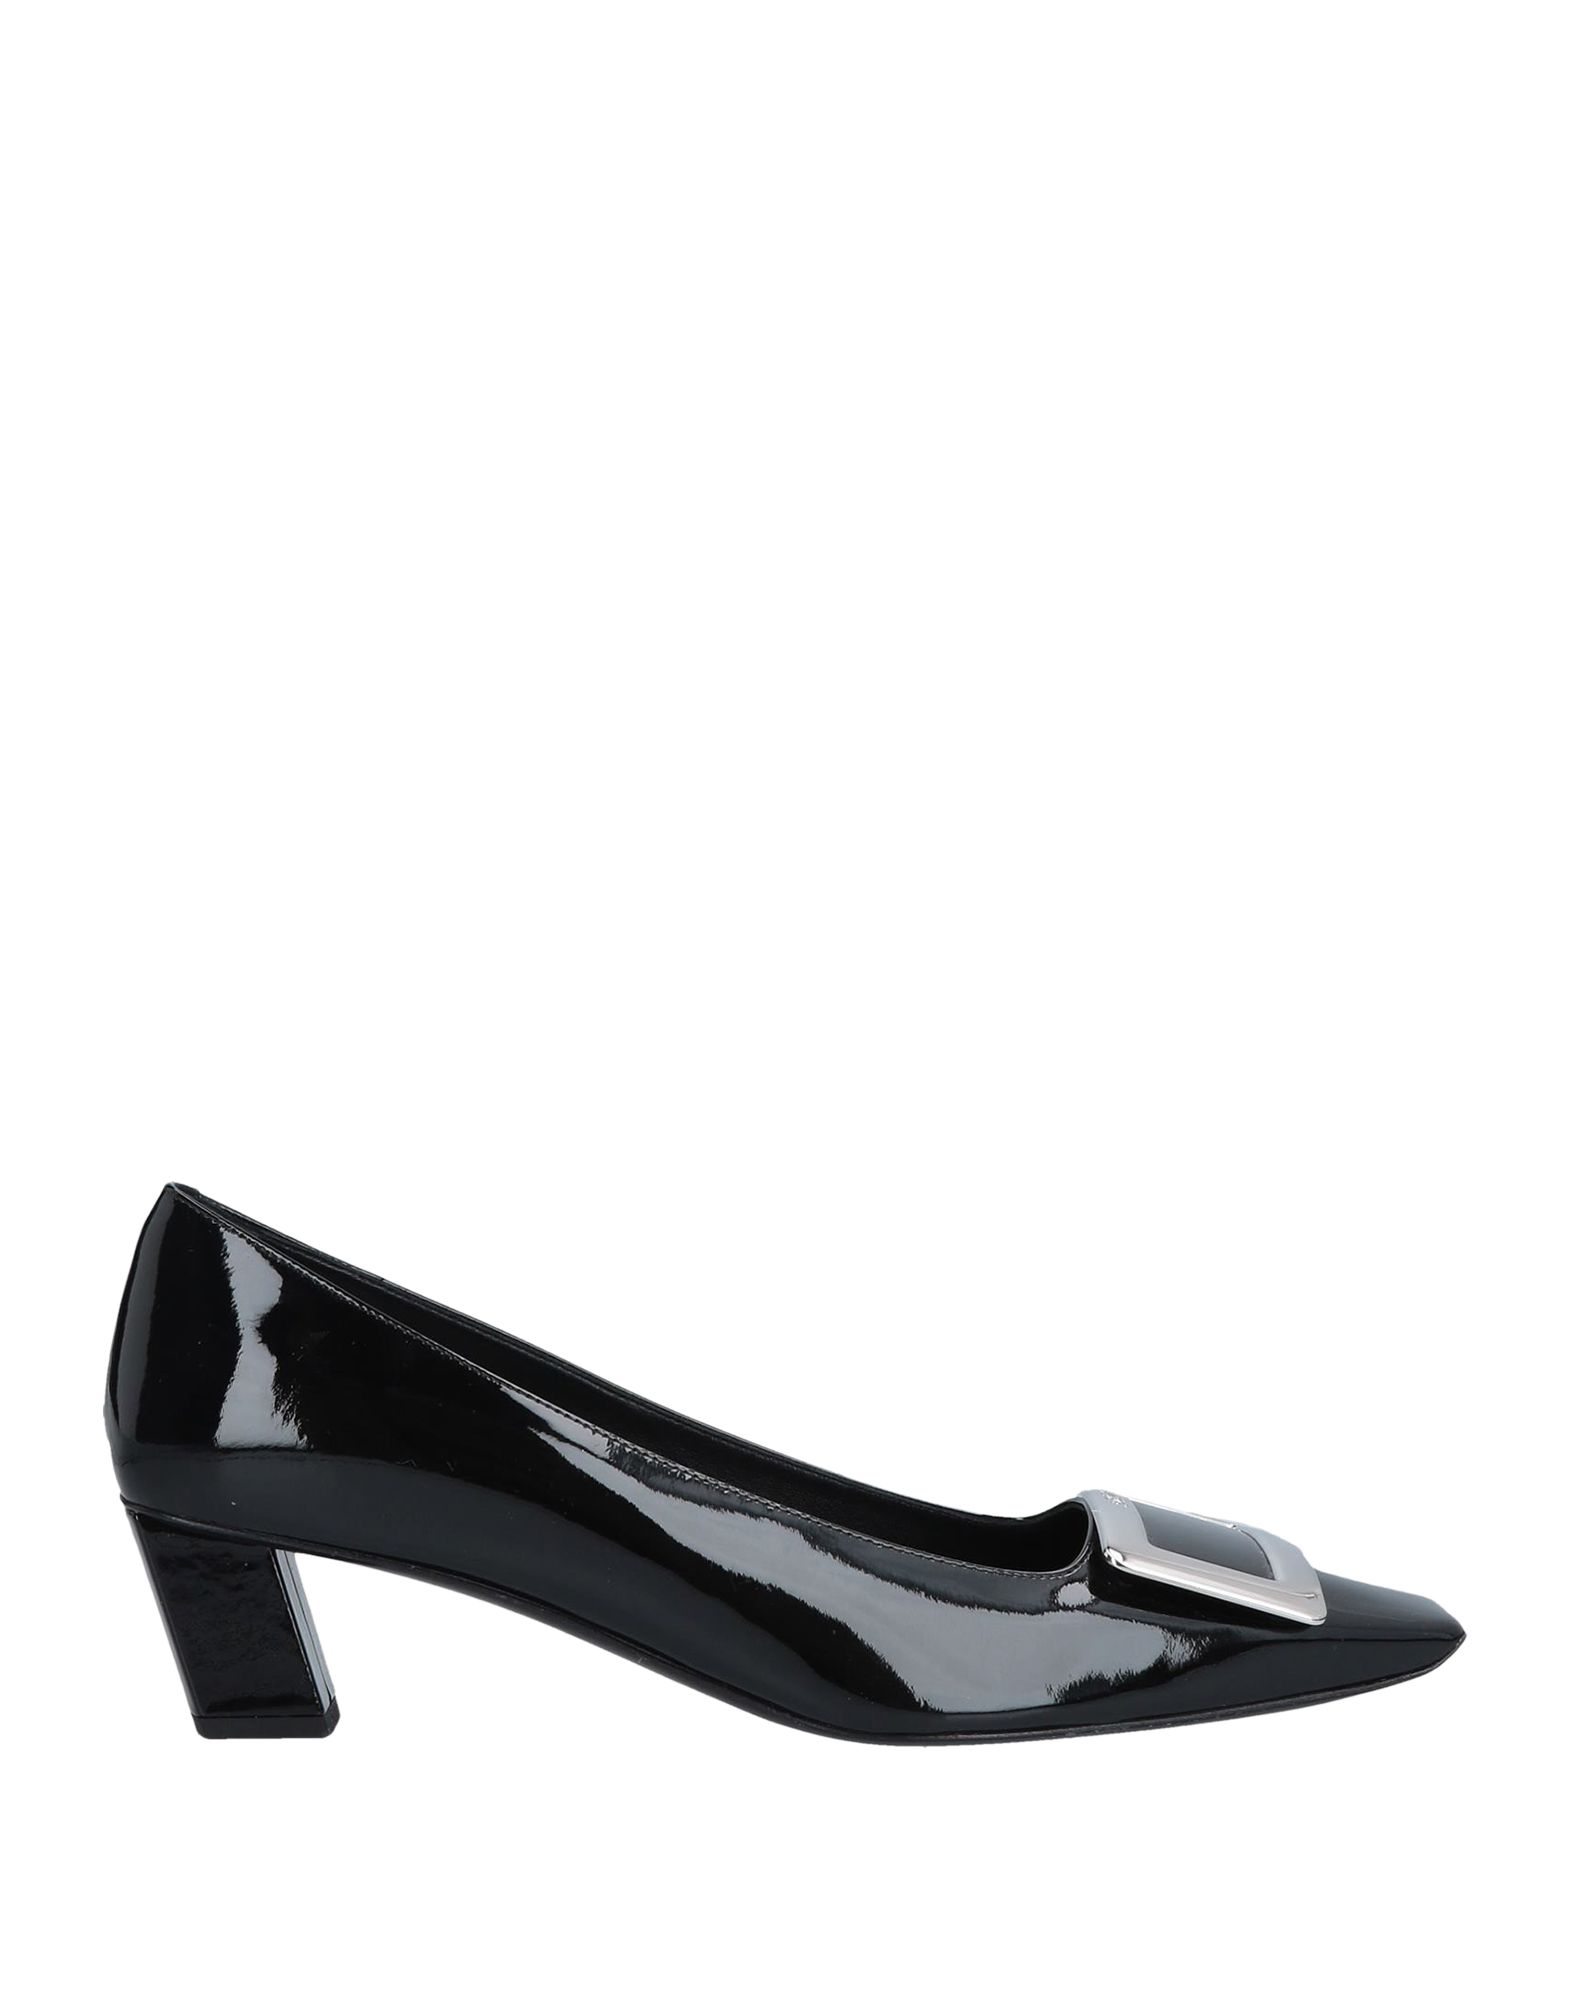 ROGER VIVIER Pumps. varnished effect, metal applications, logo, solid color, square toeline, leather lining, leather sole, square heel, covered heel, contains non-textile parts of animal origin. Soft Leather